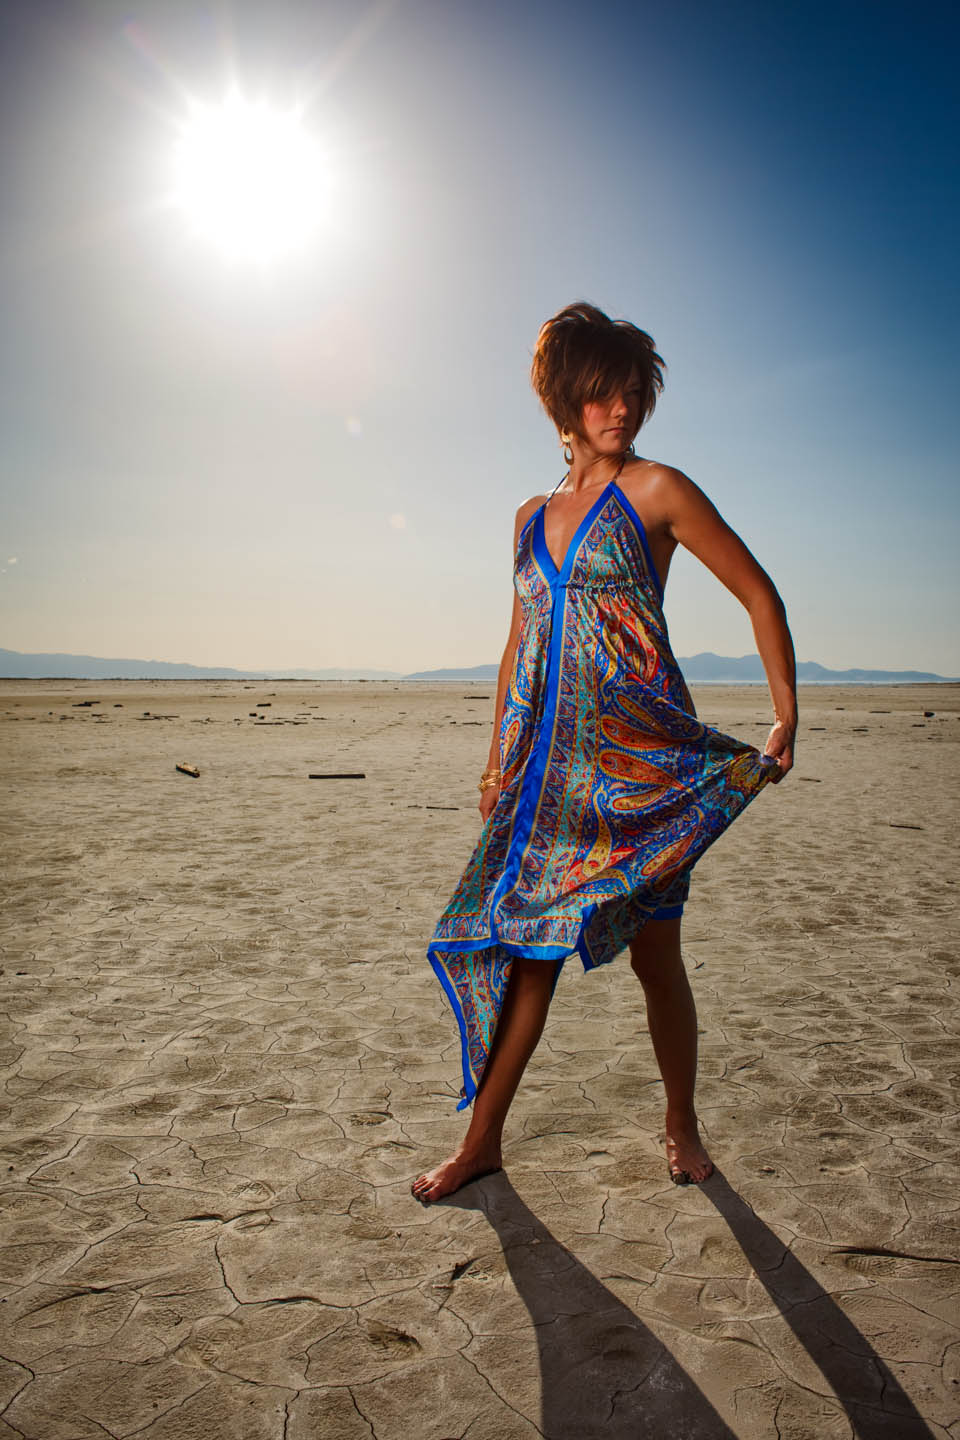 Kristin models a blue dress on the Great Salt Lake